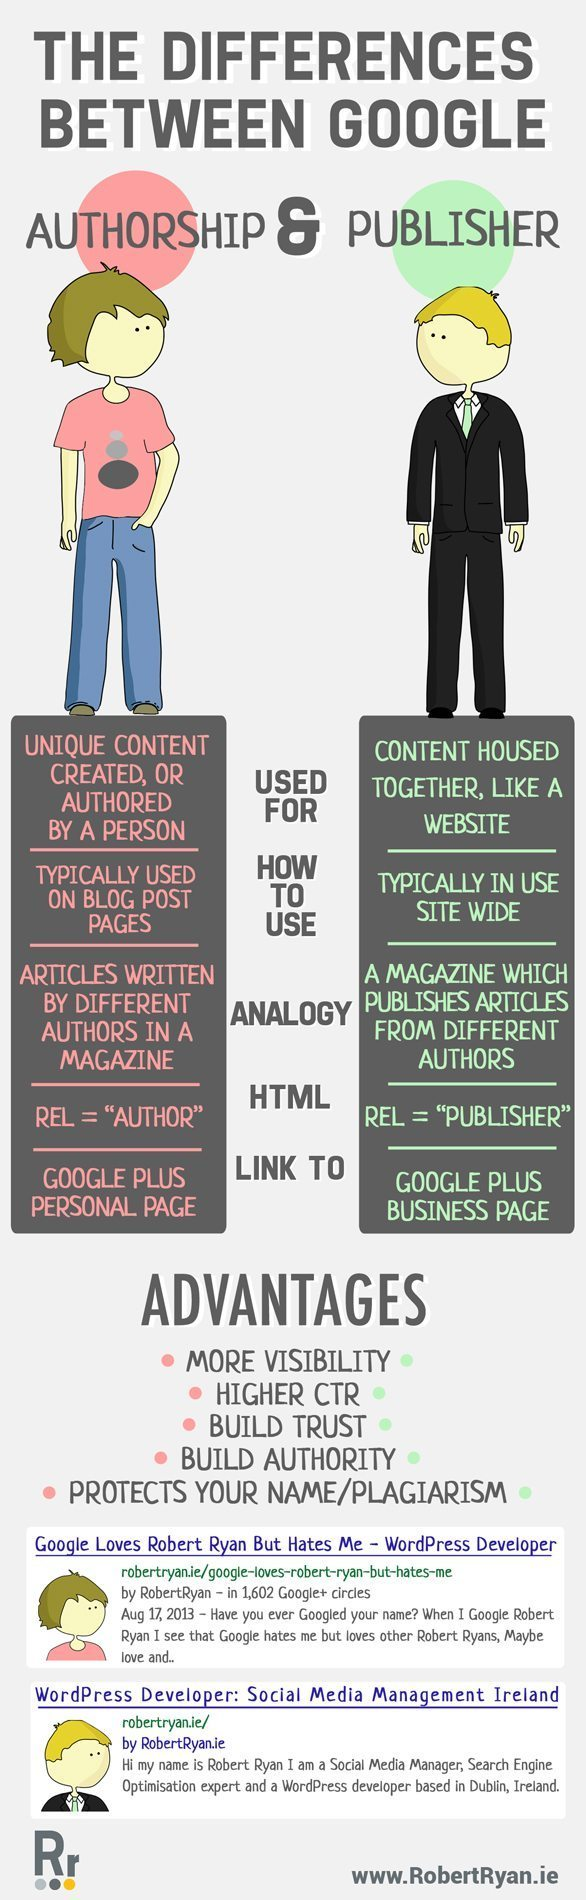 Google Authorship and Publisher - what's the difference